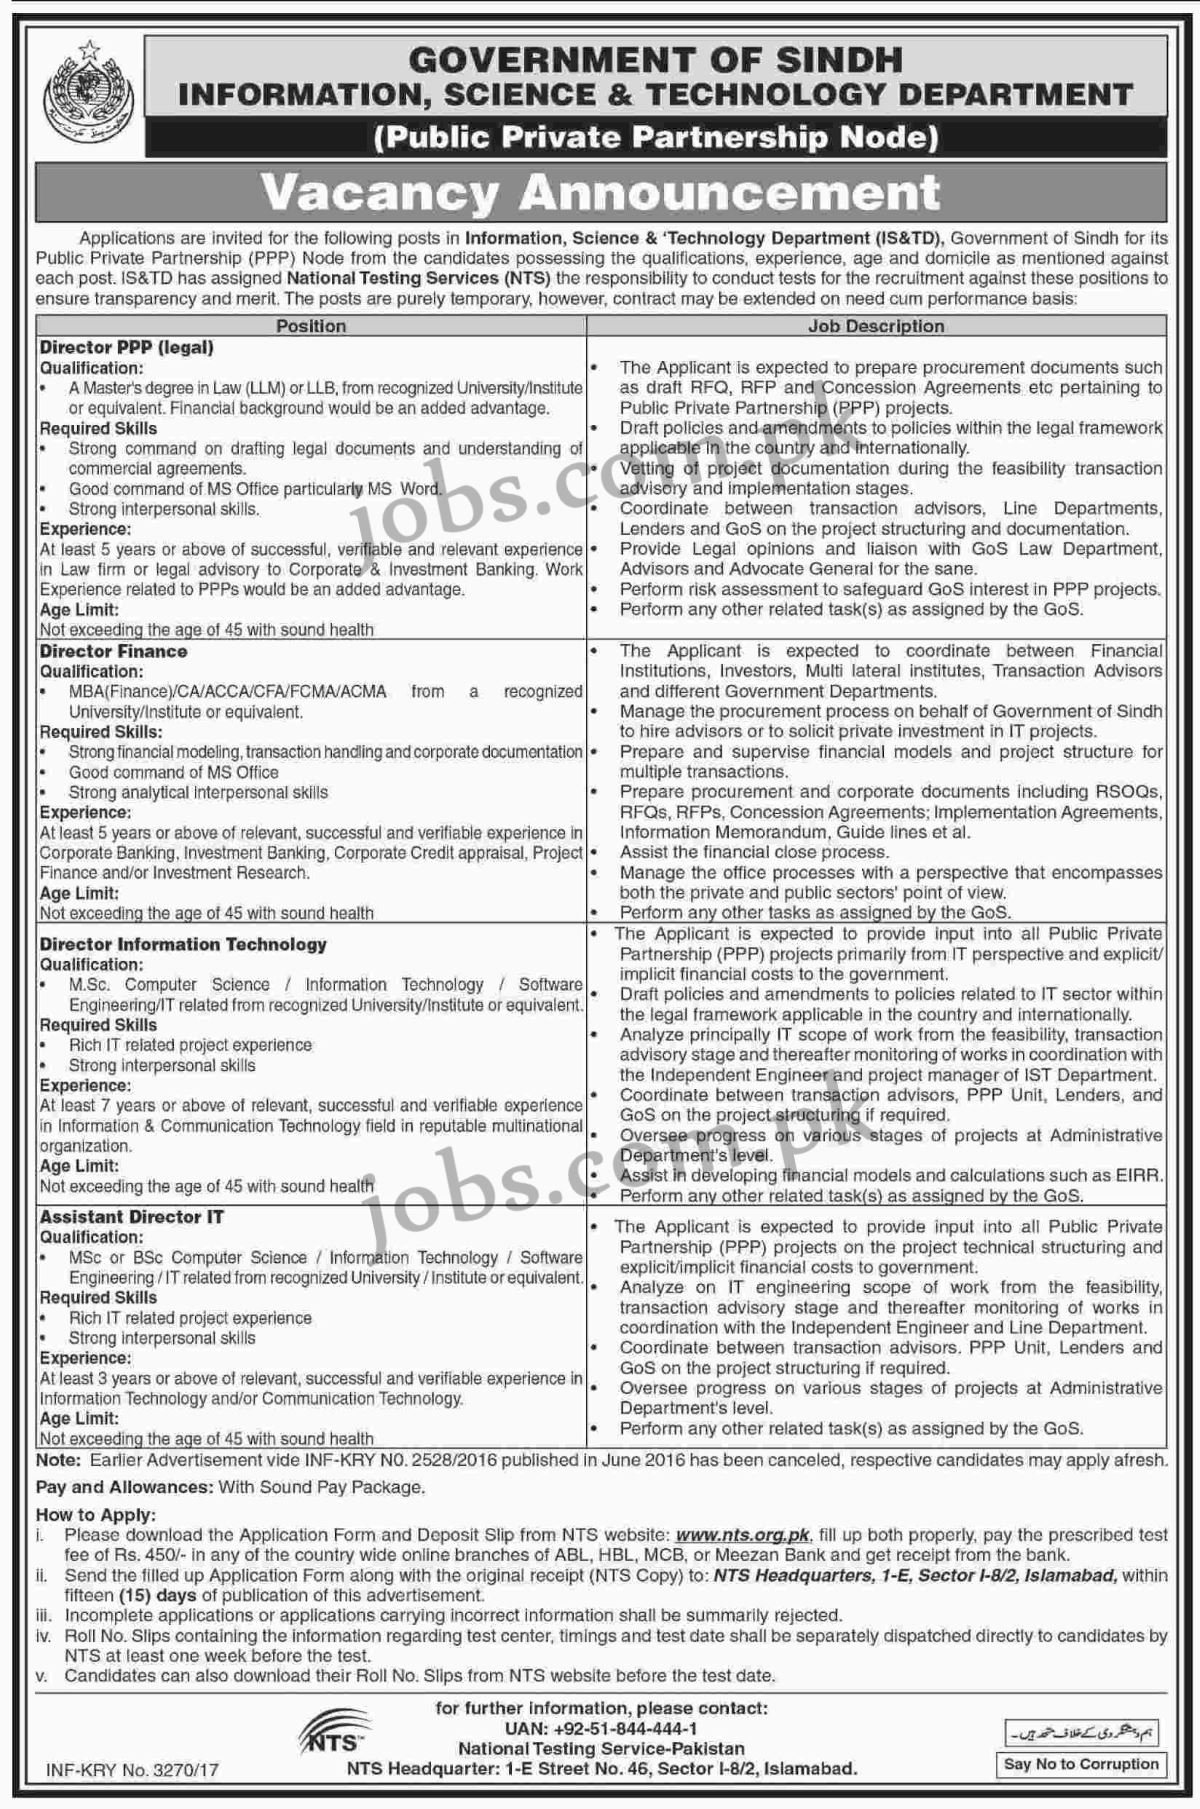 ITDS-dw Job Application Form Government Of Sindh on medical application form, government articles, government job application cover letter, government training, health care application form, driver application form, doctor application form, government employment, government job vacancies, bank application form, government newsletter, government order form, business application form, government benefits, government events, security application form, government job application process, finance application form, teaching application form, government job openings,